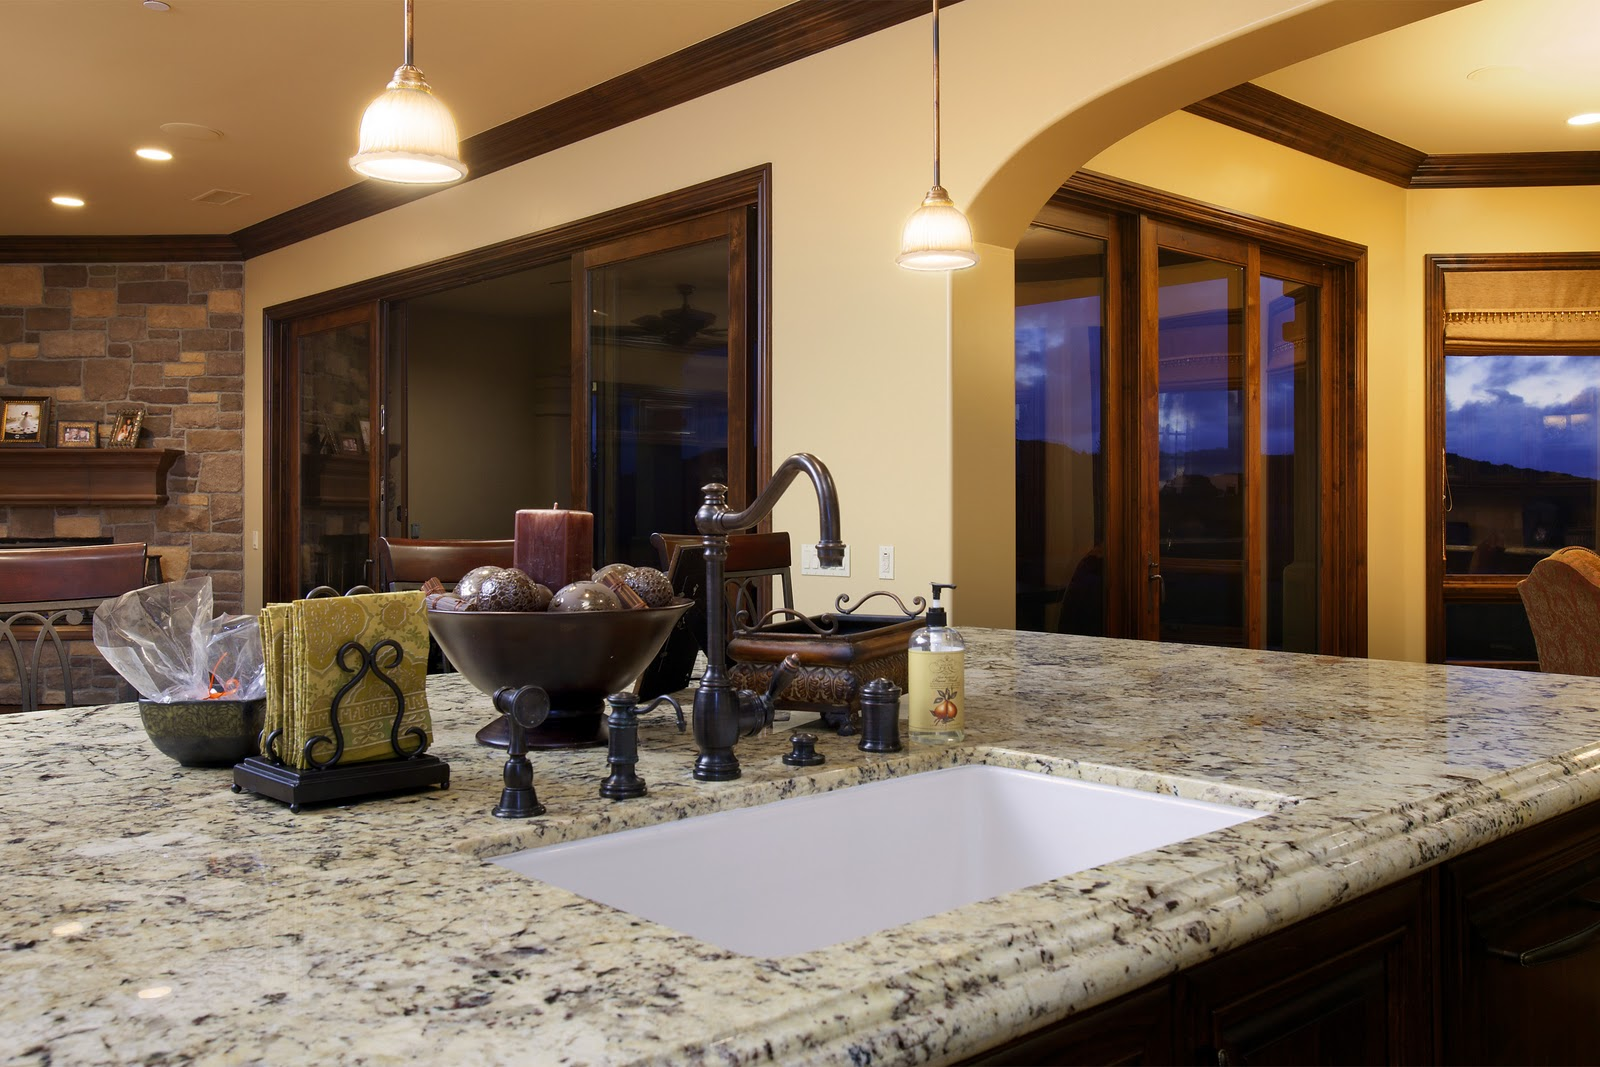 High end kitchen sink faucets - Everything And The Kitchen Sink